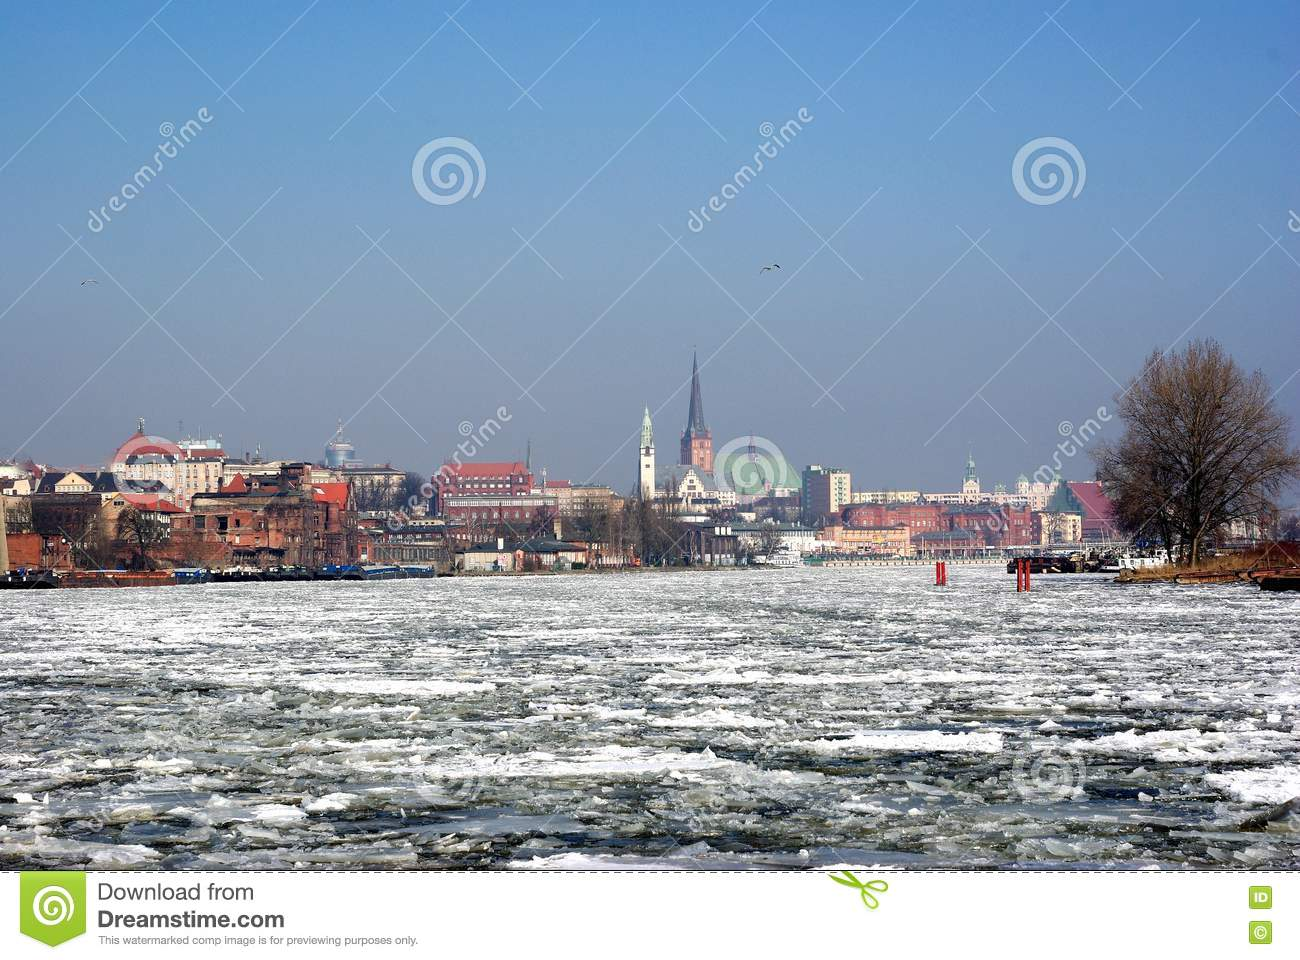 Ice float on river on city background